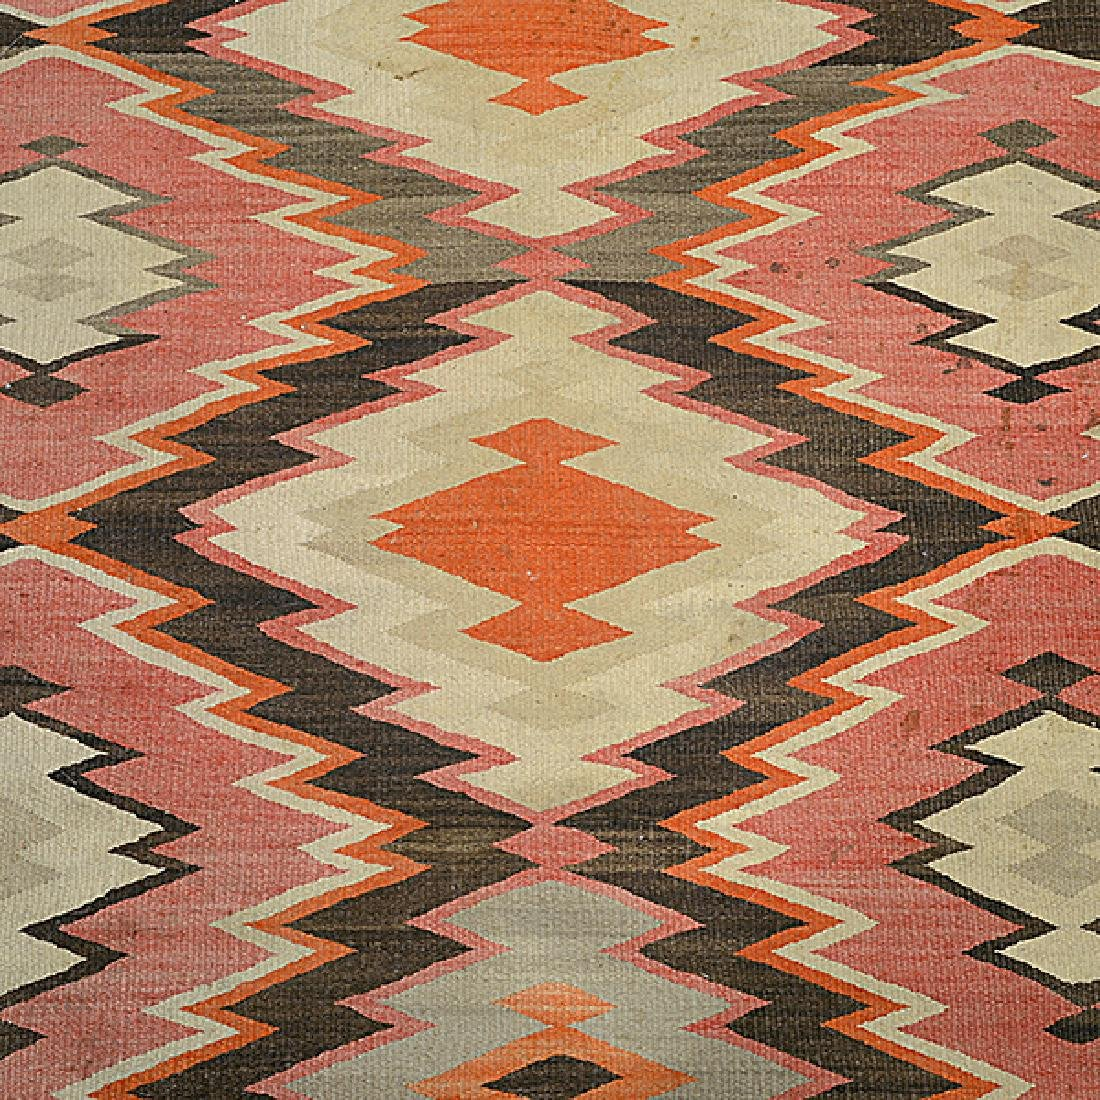 Navajo Rug with Patchwork Diamond - 4